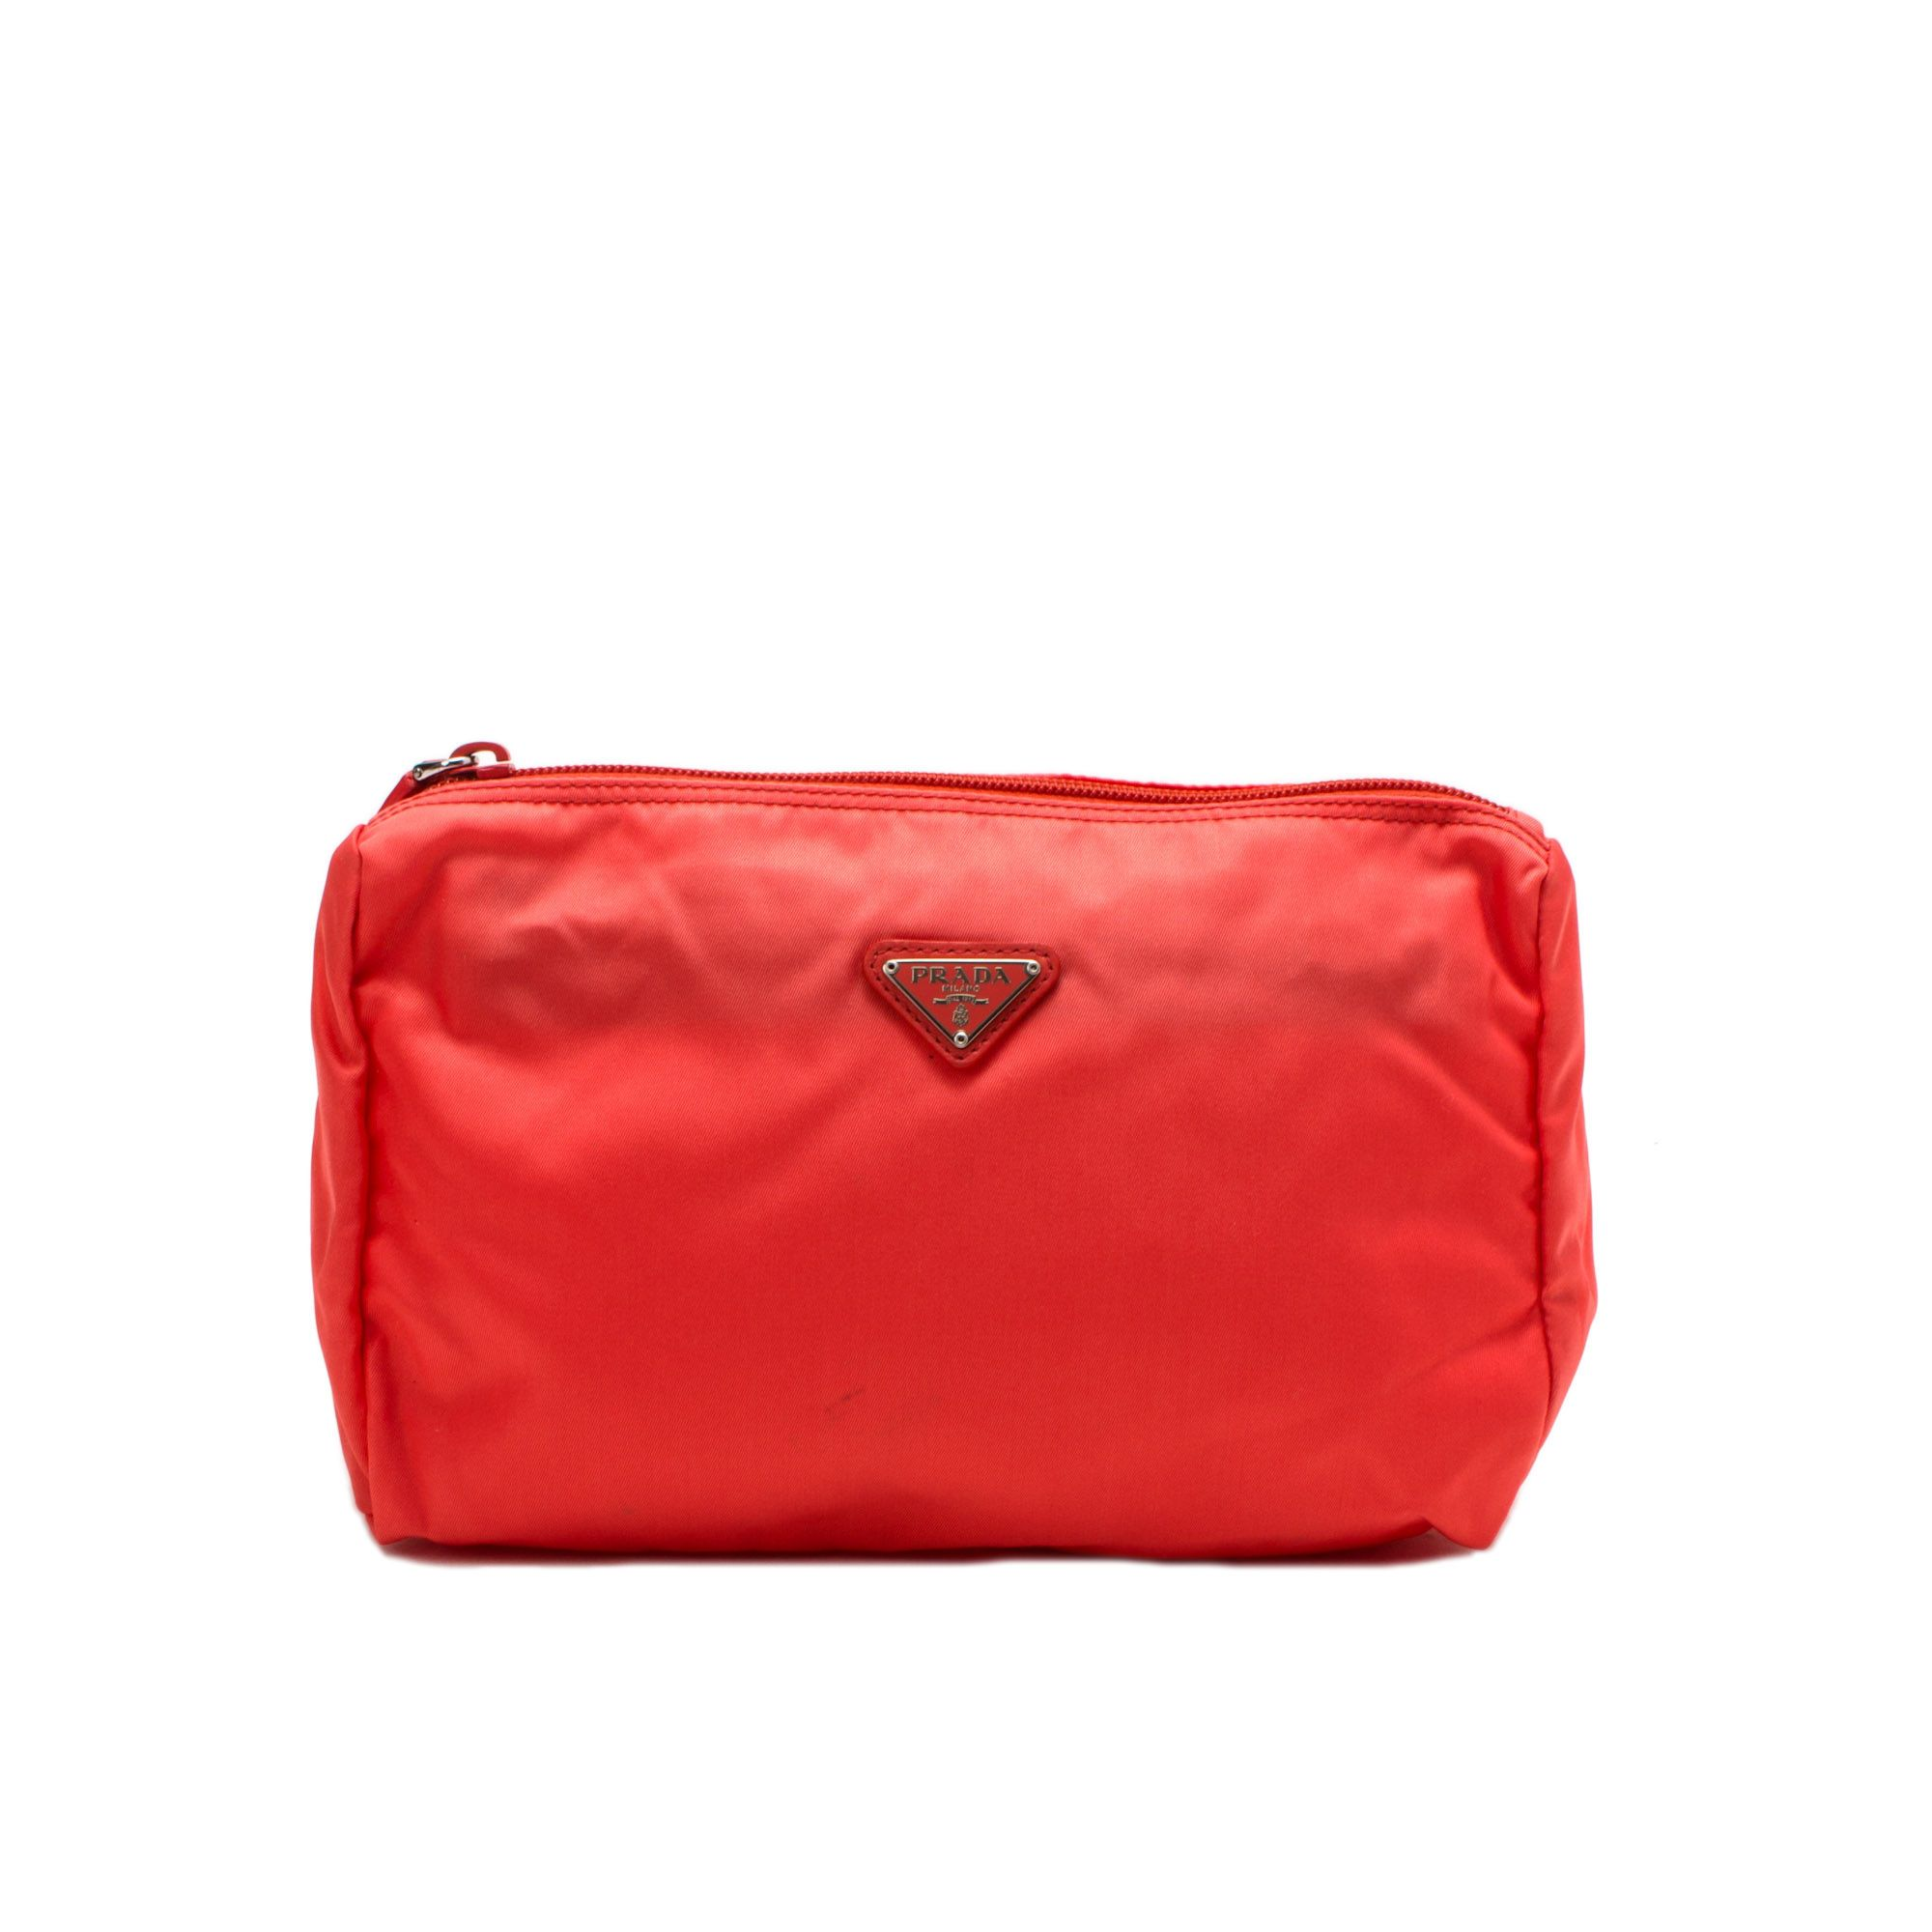 35cf3f26fcad91 Prada neon orange nylon #pouch. Available at lxrco.com for $129 ...